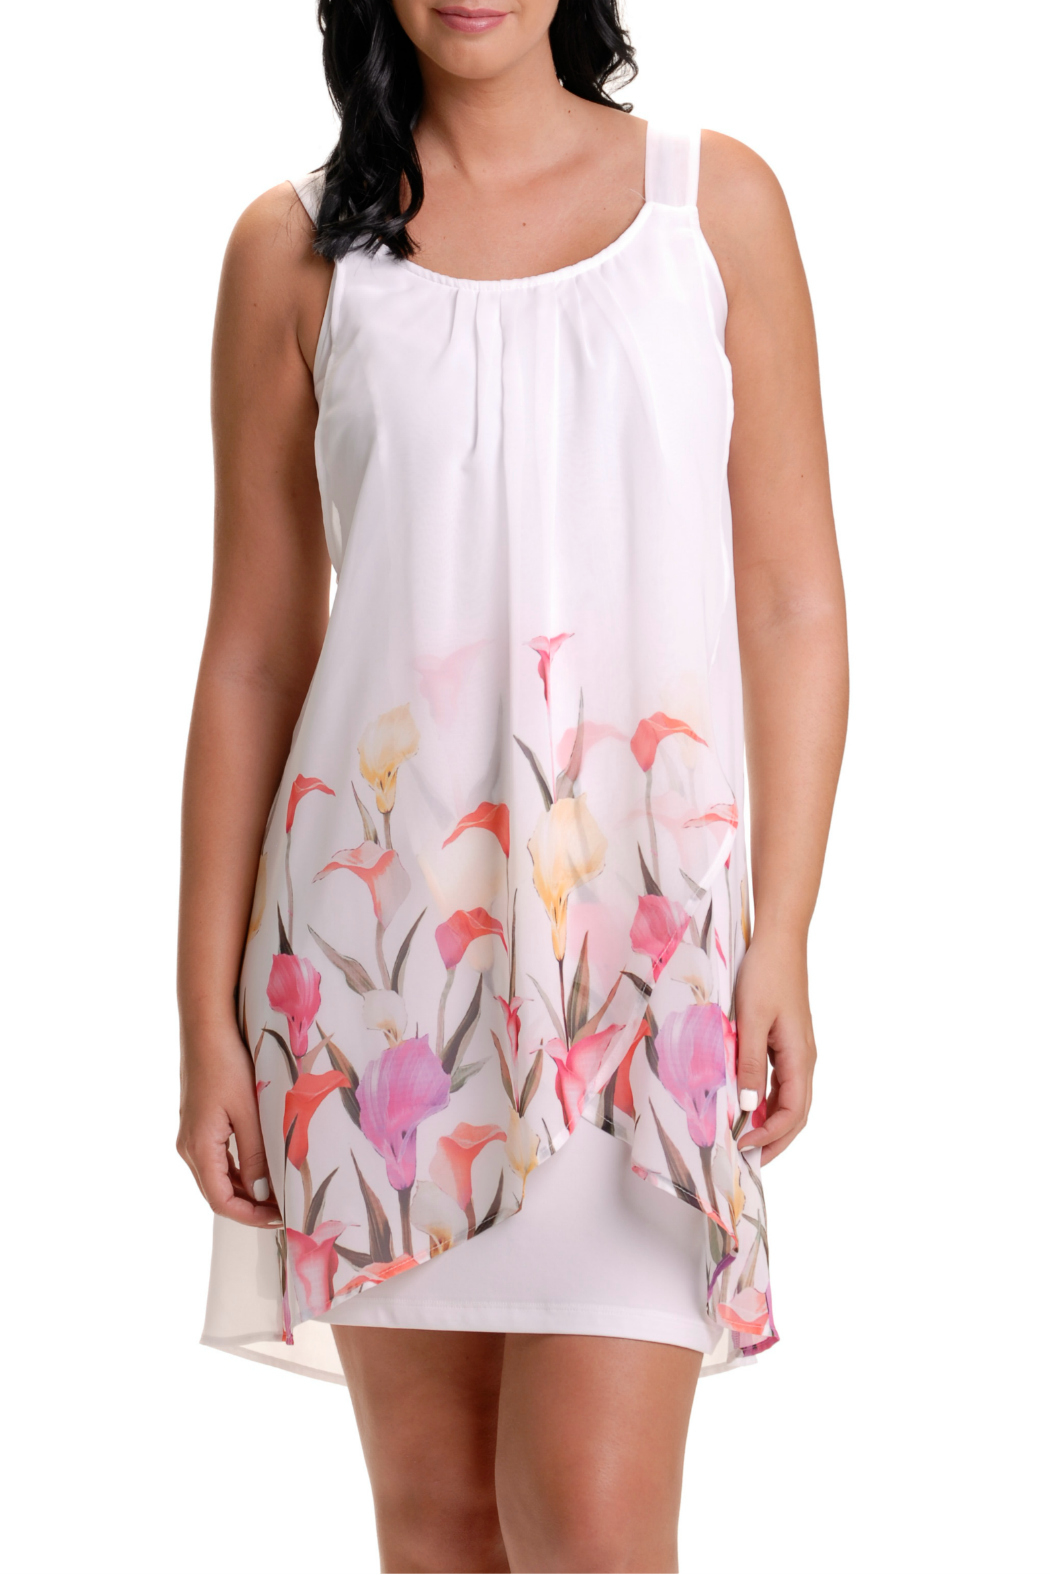 Bali Draped Floral Dress - Main Image